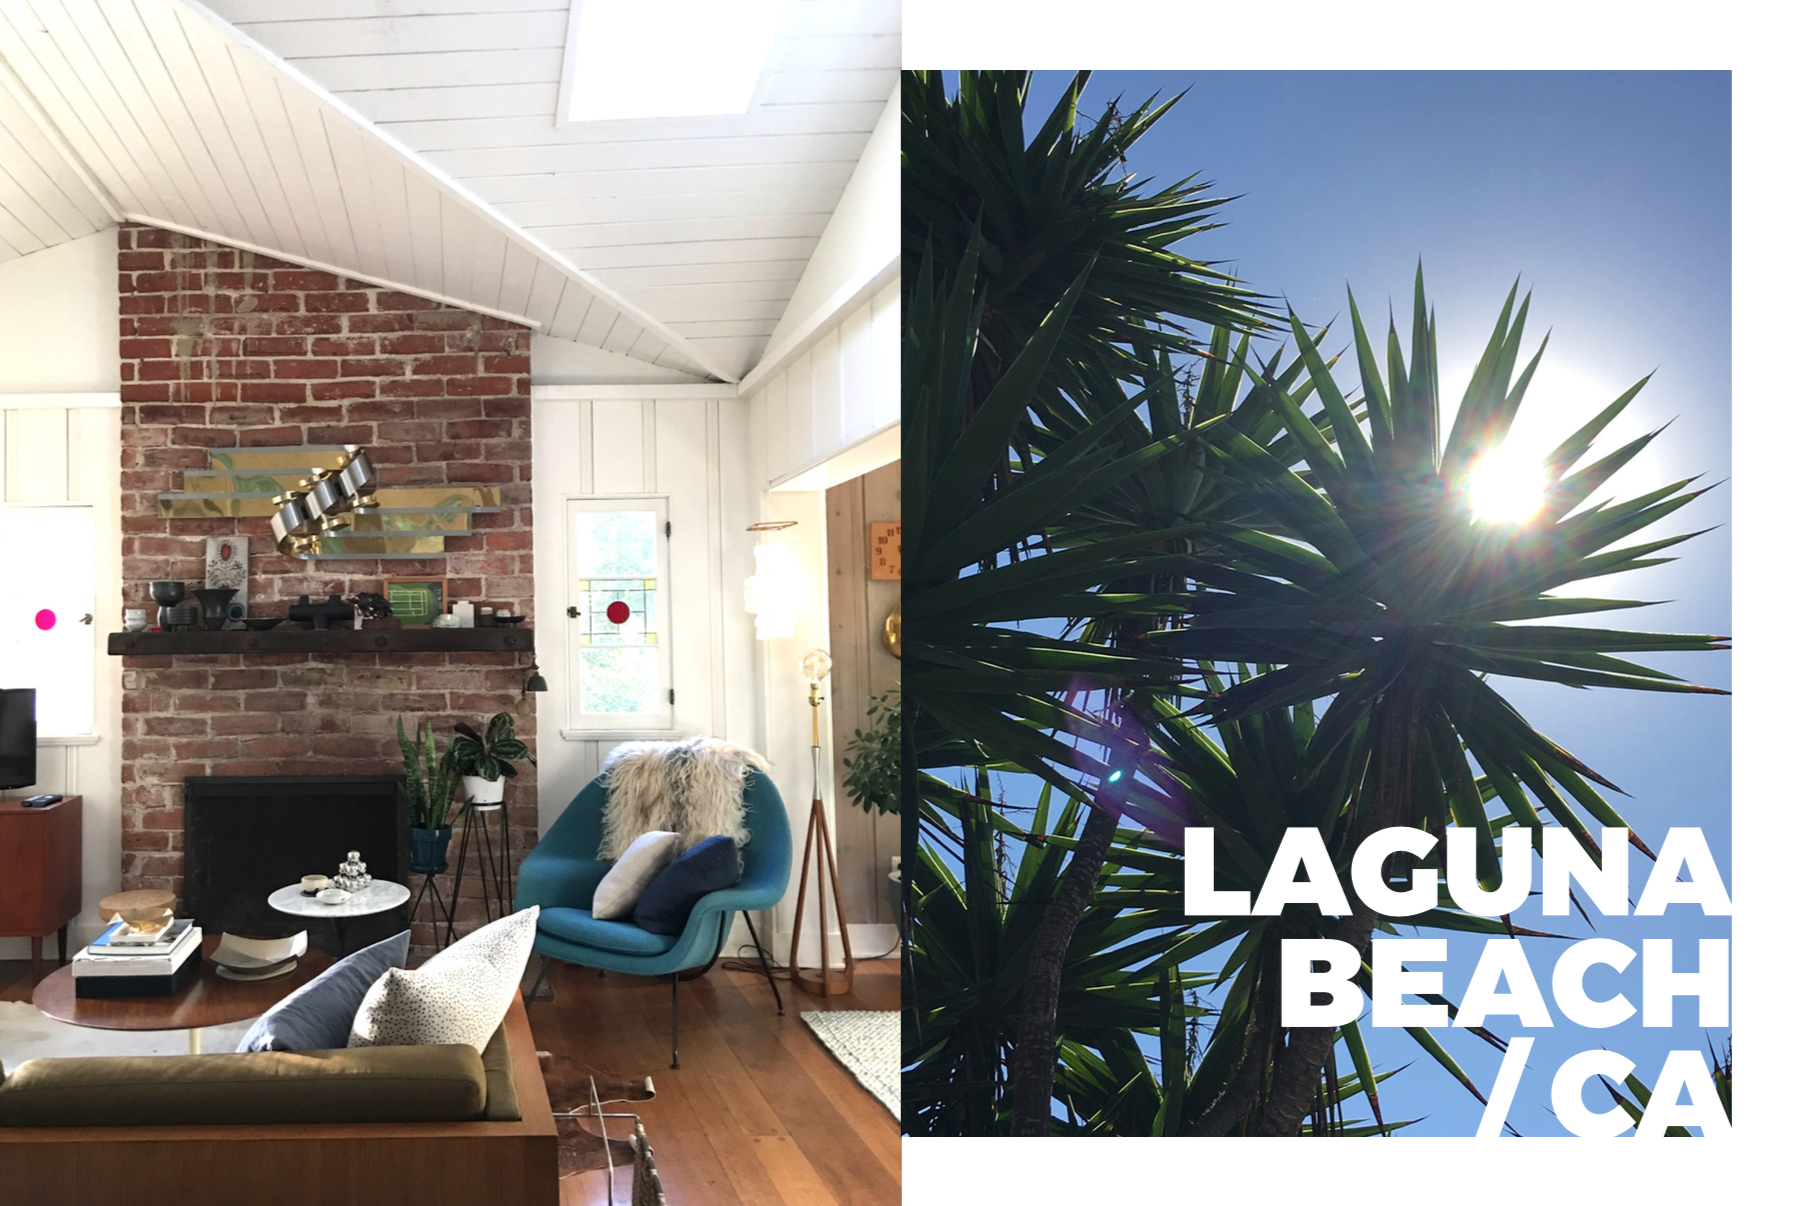 Photography: Marcus Hay, Left: Marcus's new living room, Right: Tropical Leaves shield the sun